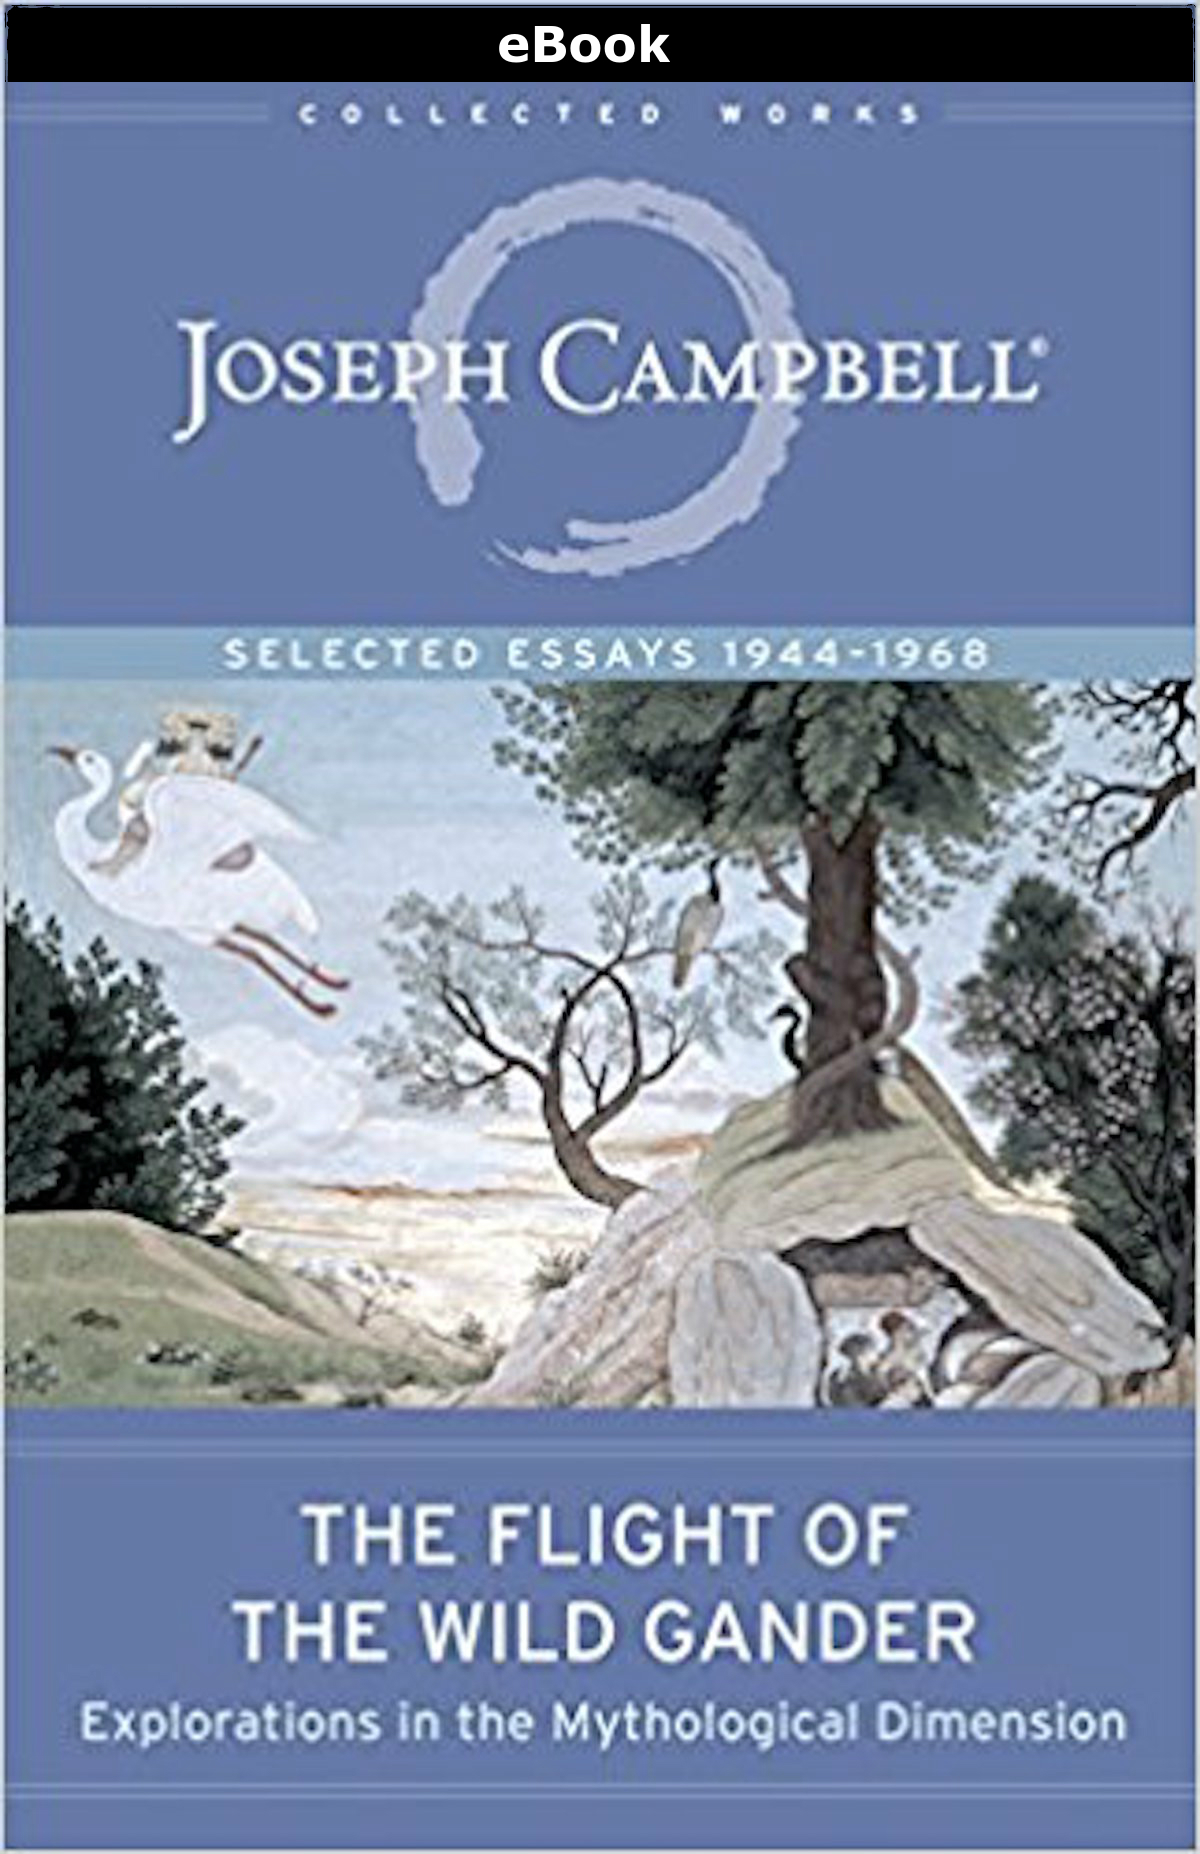 eBook: The Flight of the Wild Gander